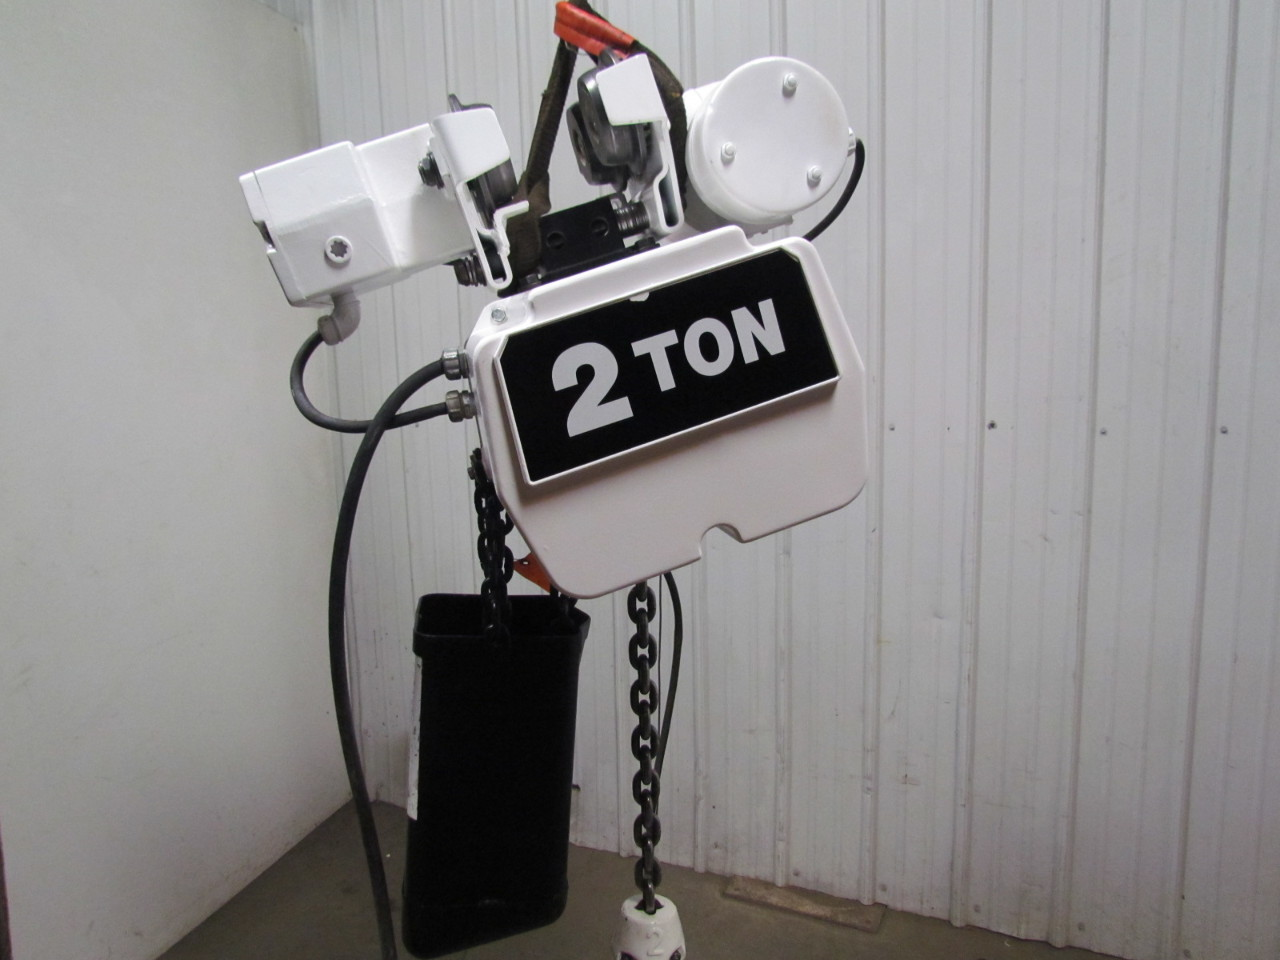 hight resolution of coffing ec4016 3 2 ton electric chain hoist power trolley 16fpm 230 460v 3ph